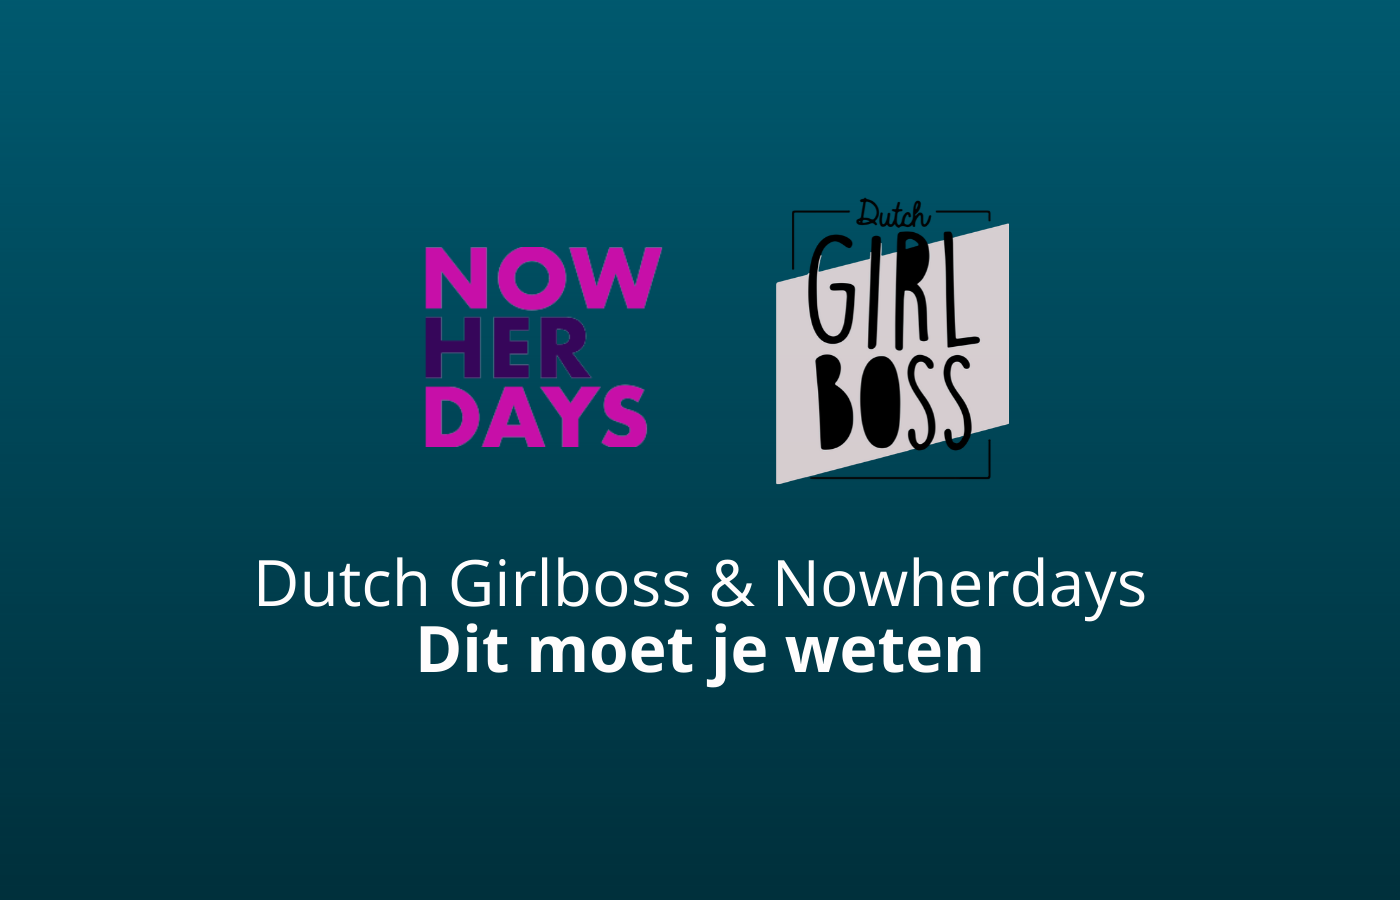 dutch girlboss en nowherdays